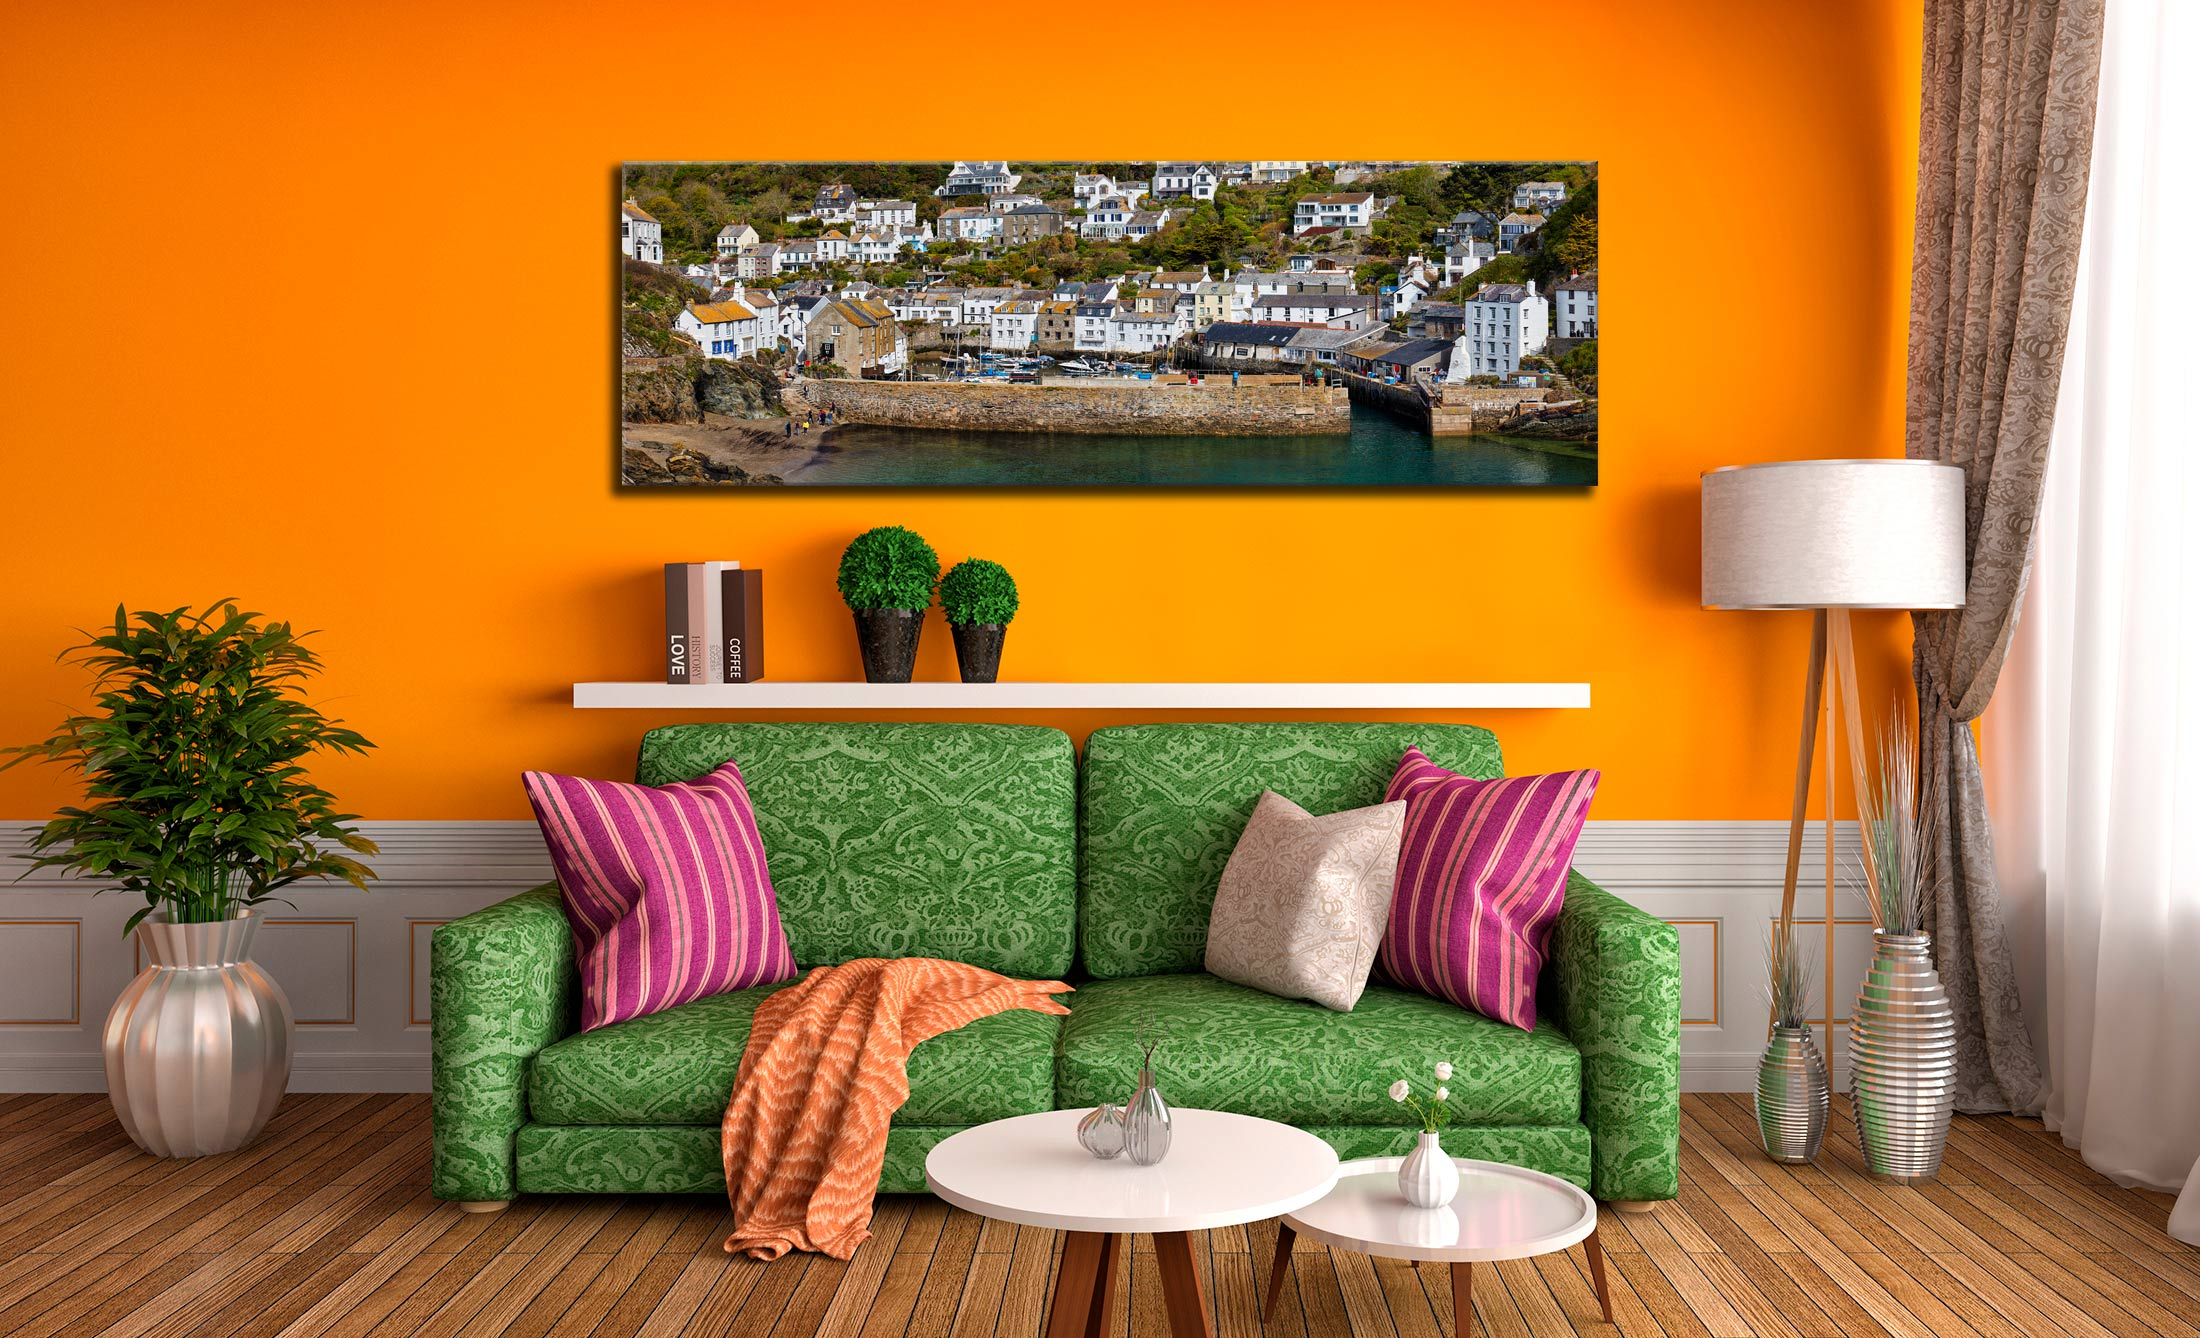 Polperro Harbour Wall - Canvas Print on wall